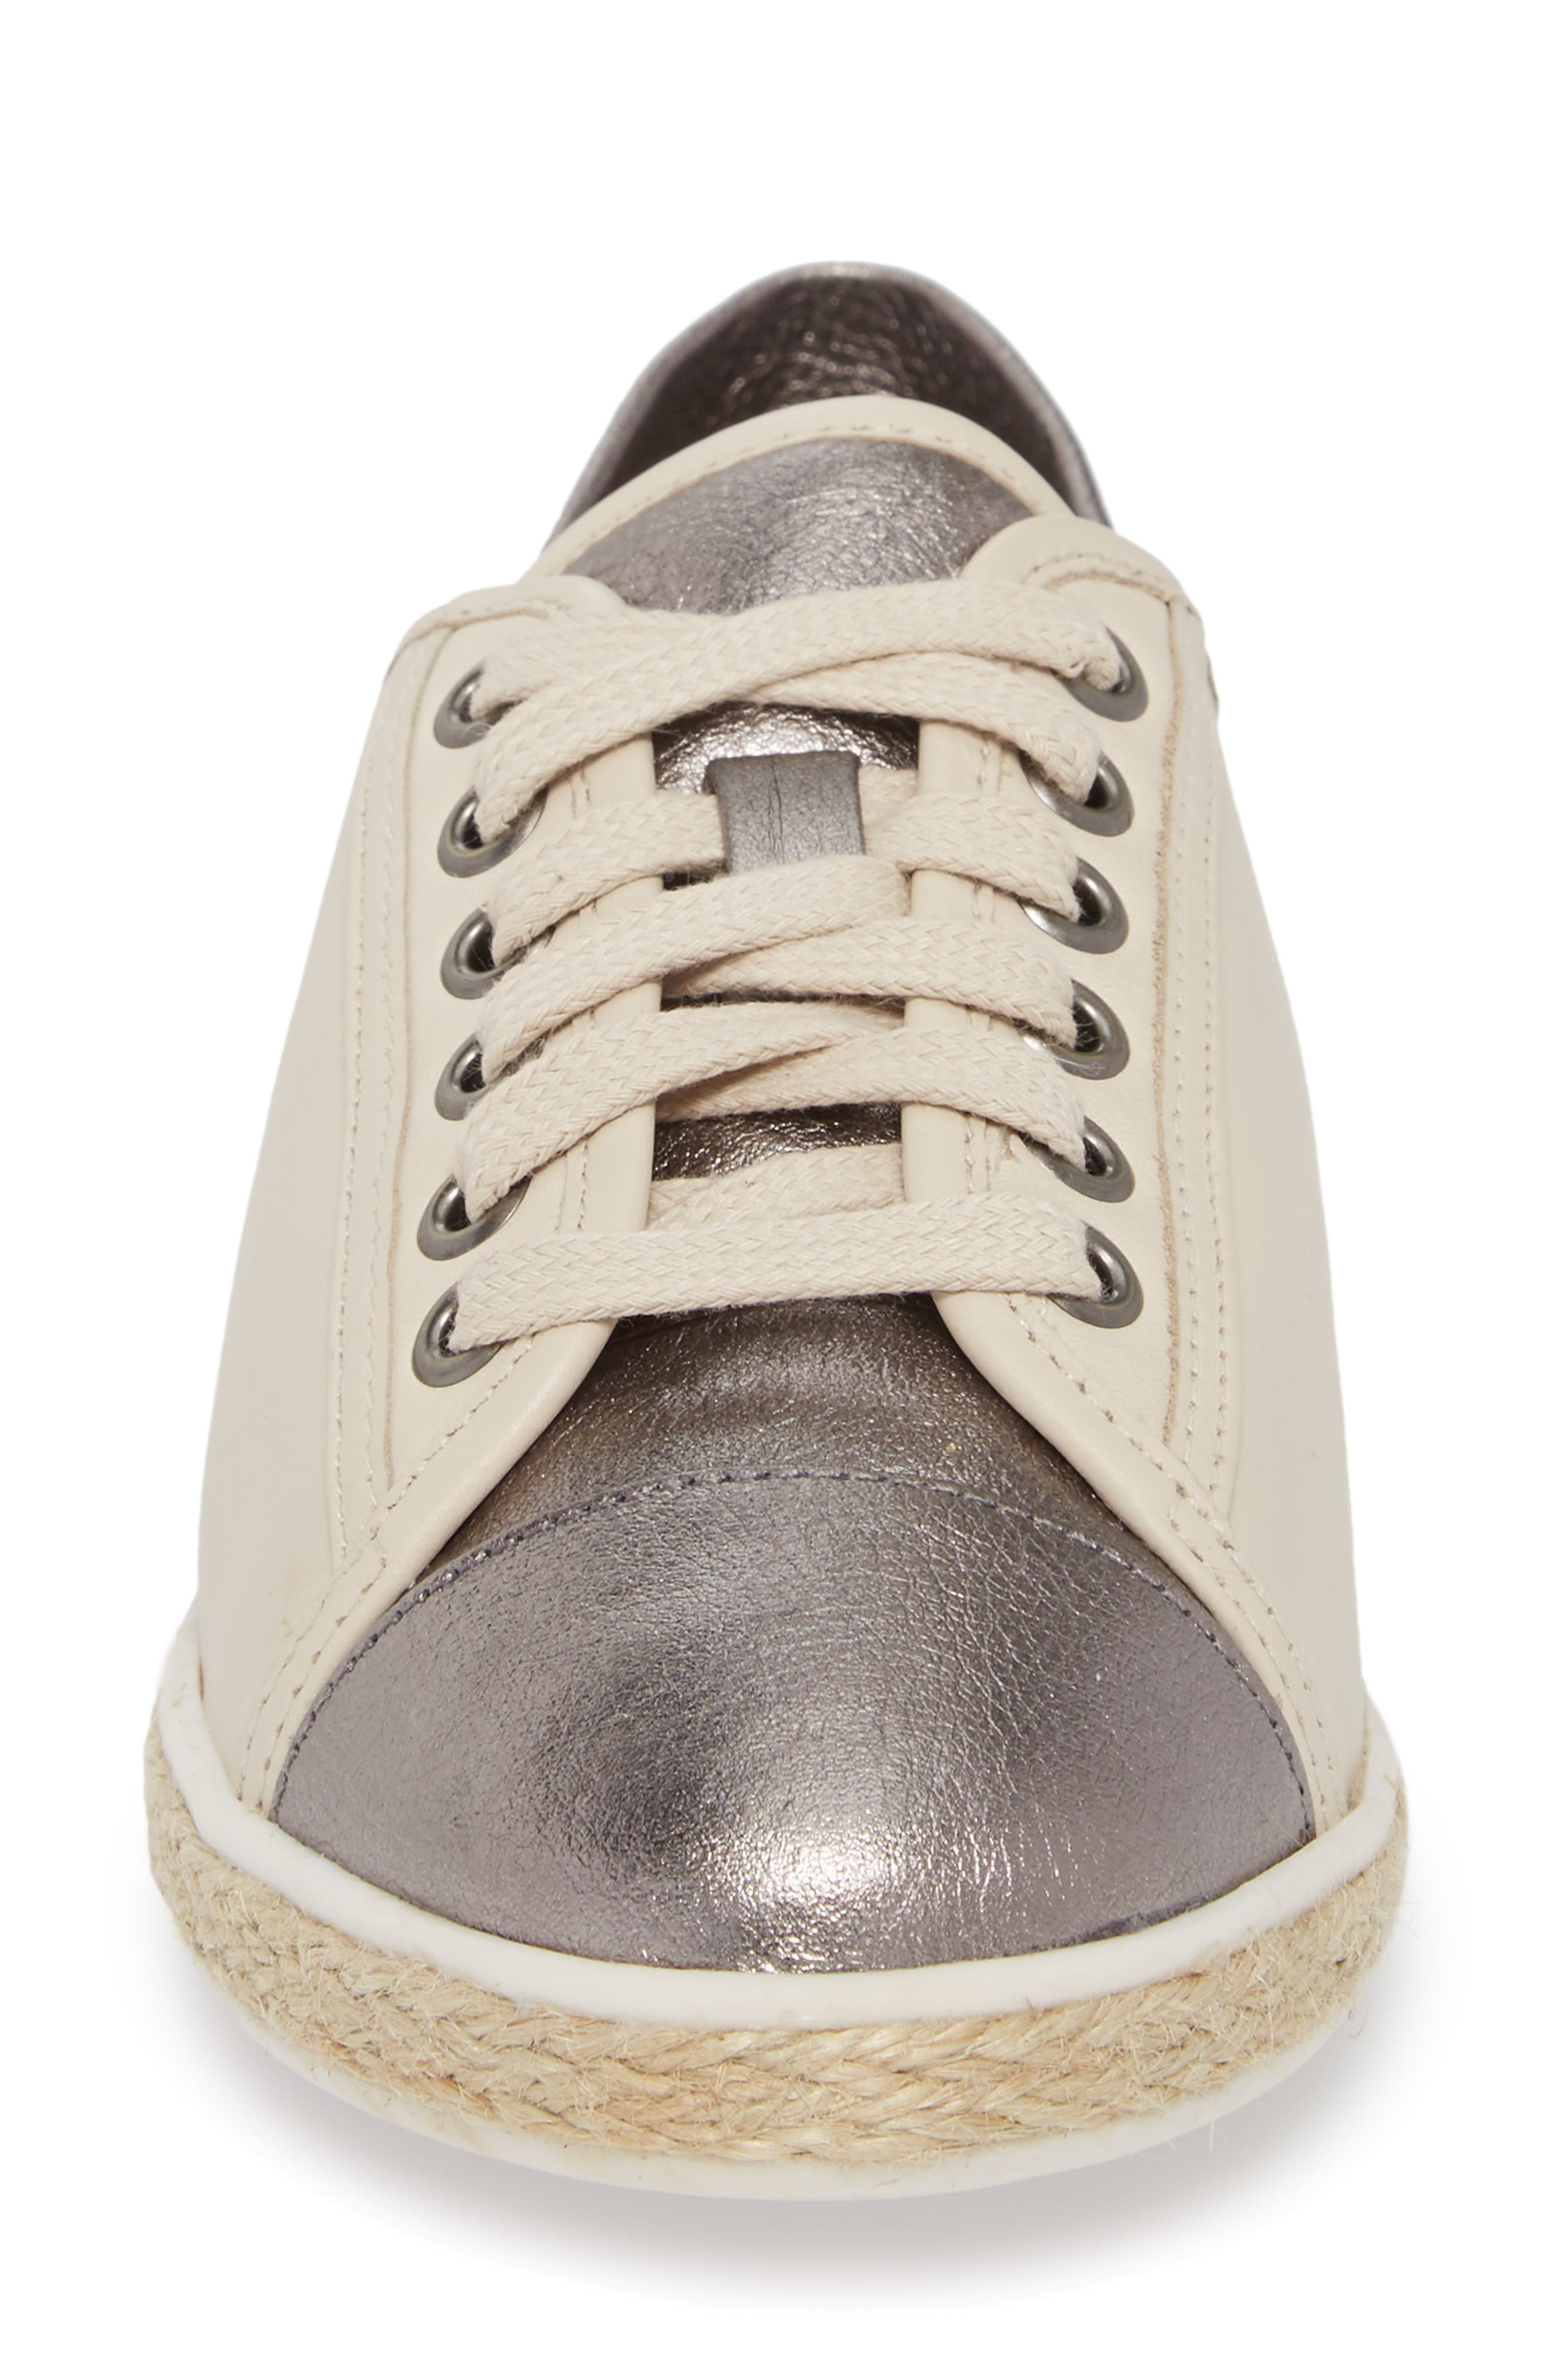 Buddy Convertible Heel Sneaker,                             Alternate thumbnail 4, color,                             GUNMETAL LEATHER